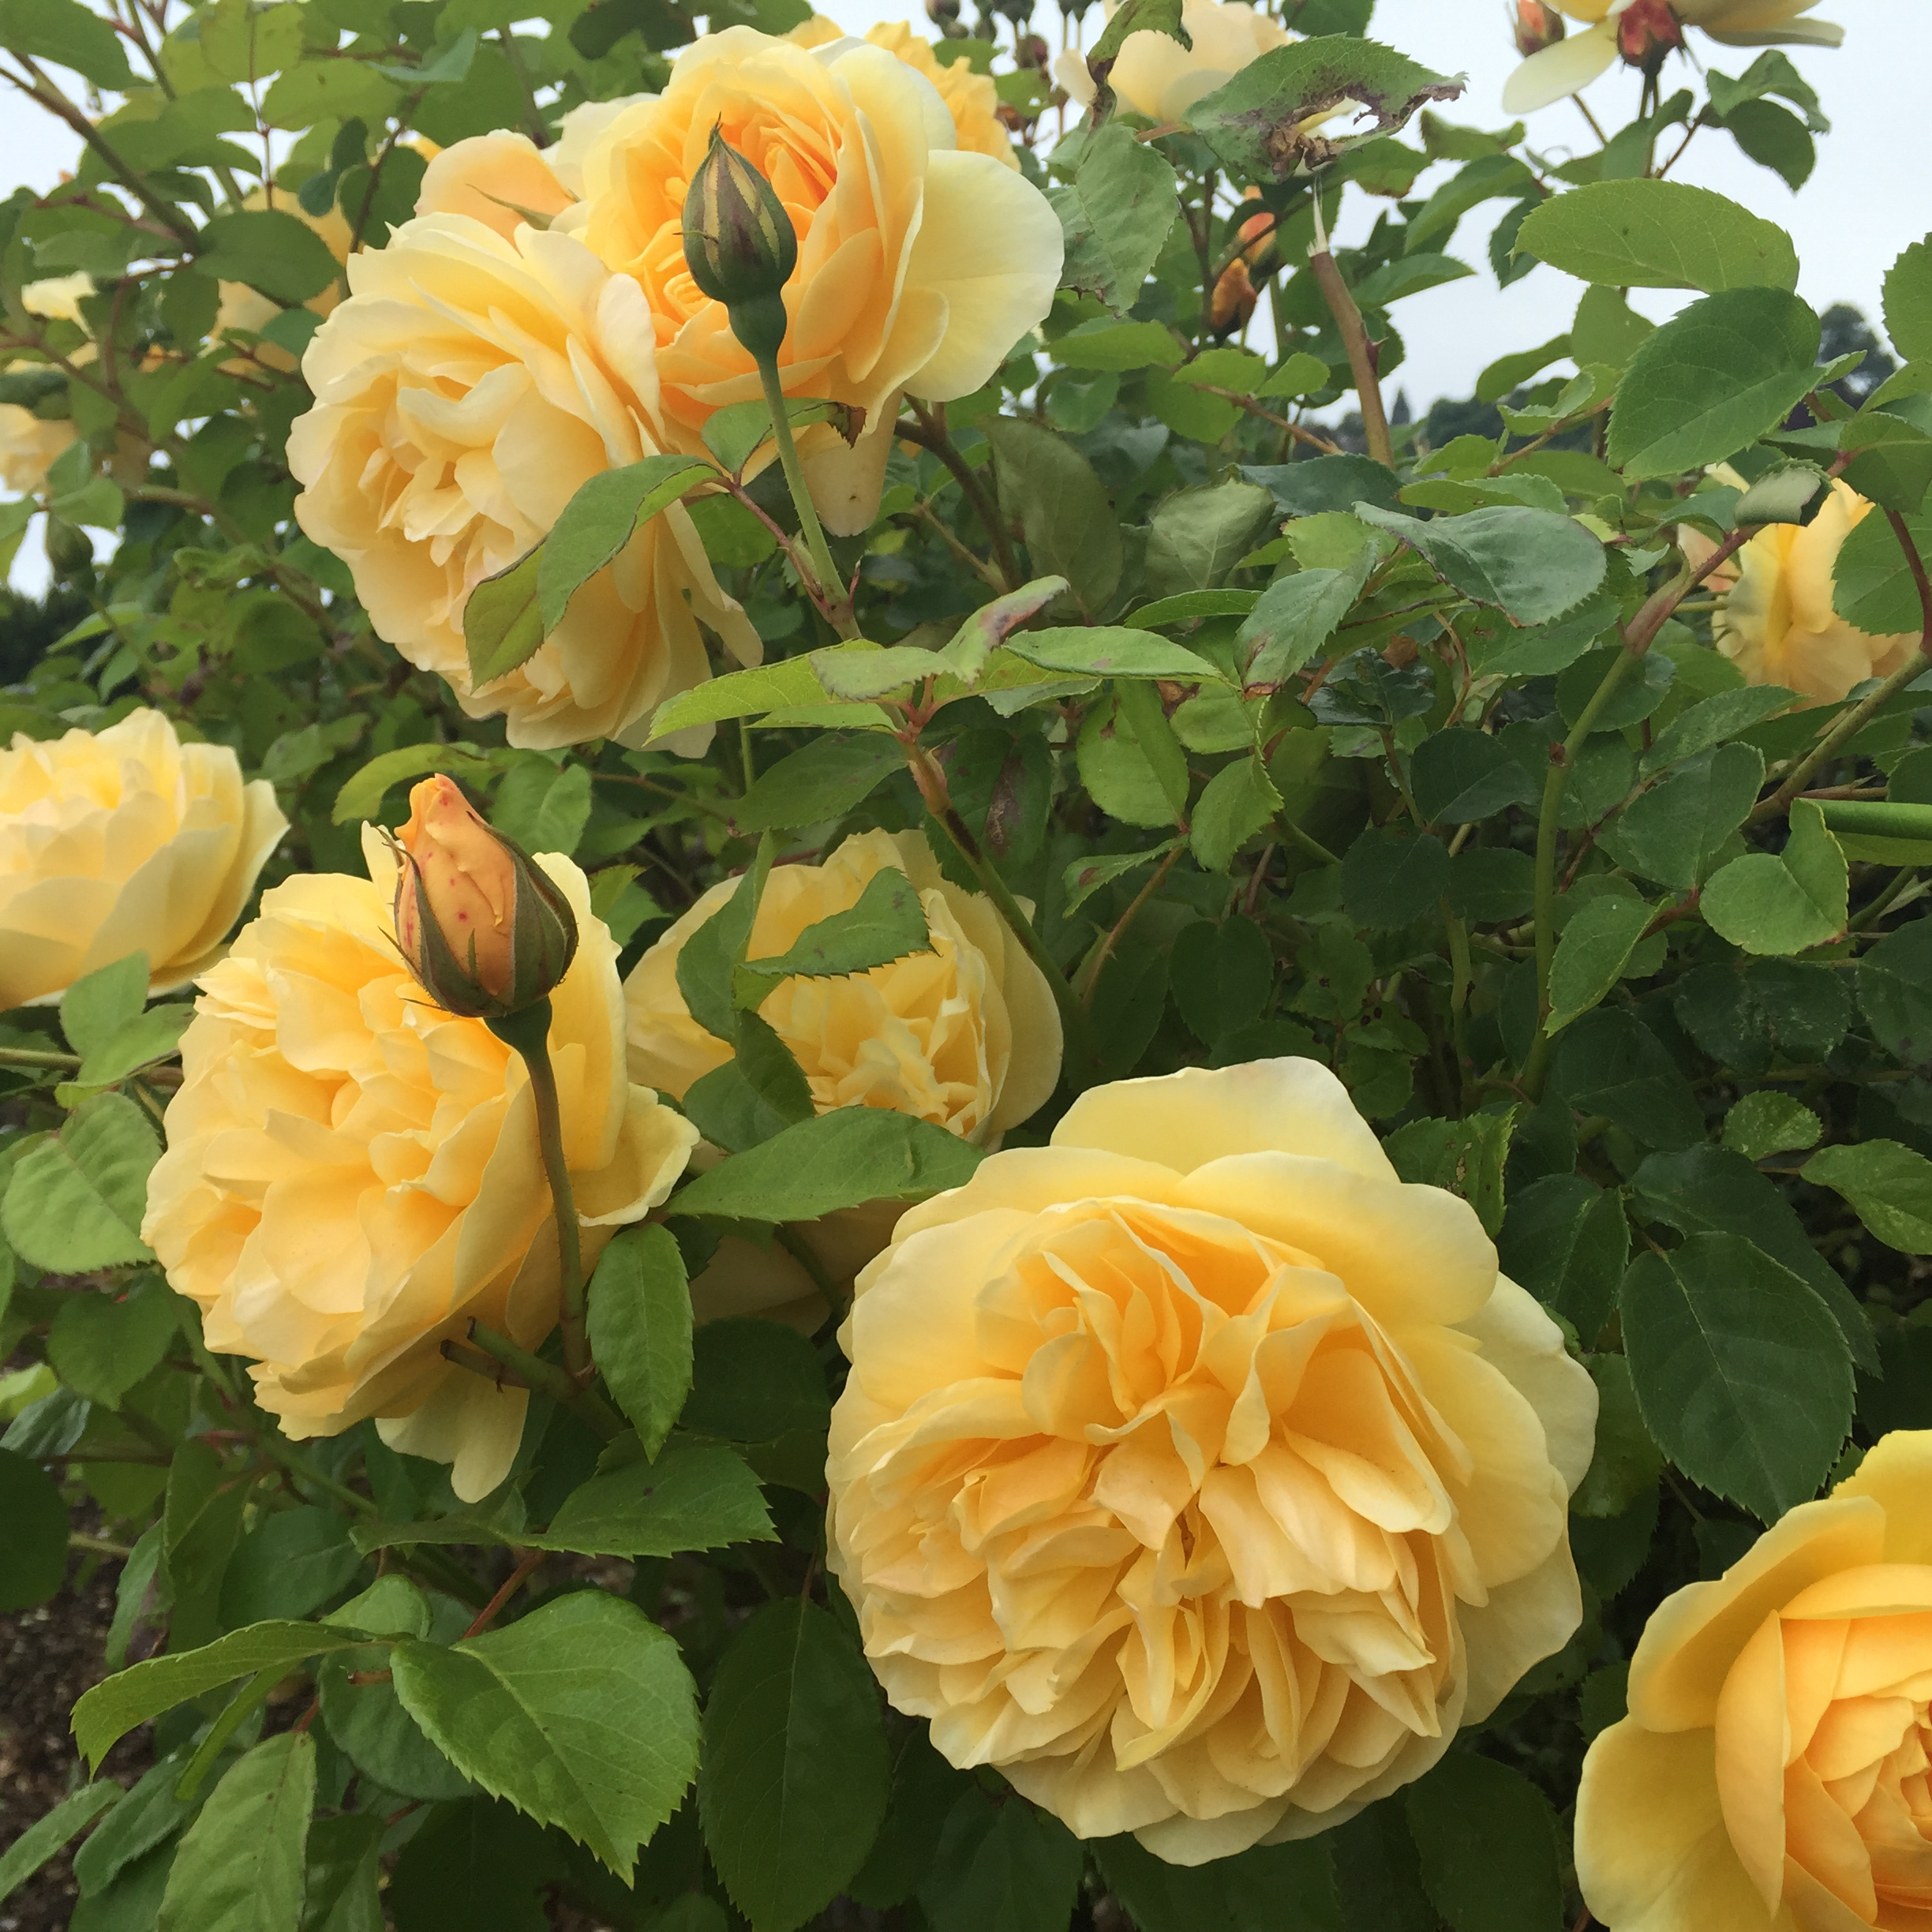 Add Rock Dust To Compost Tea To Keep Roses Blooming All Summer